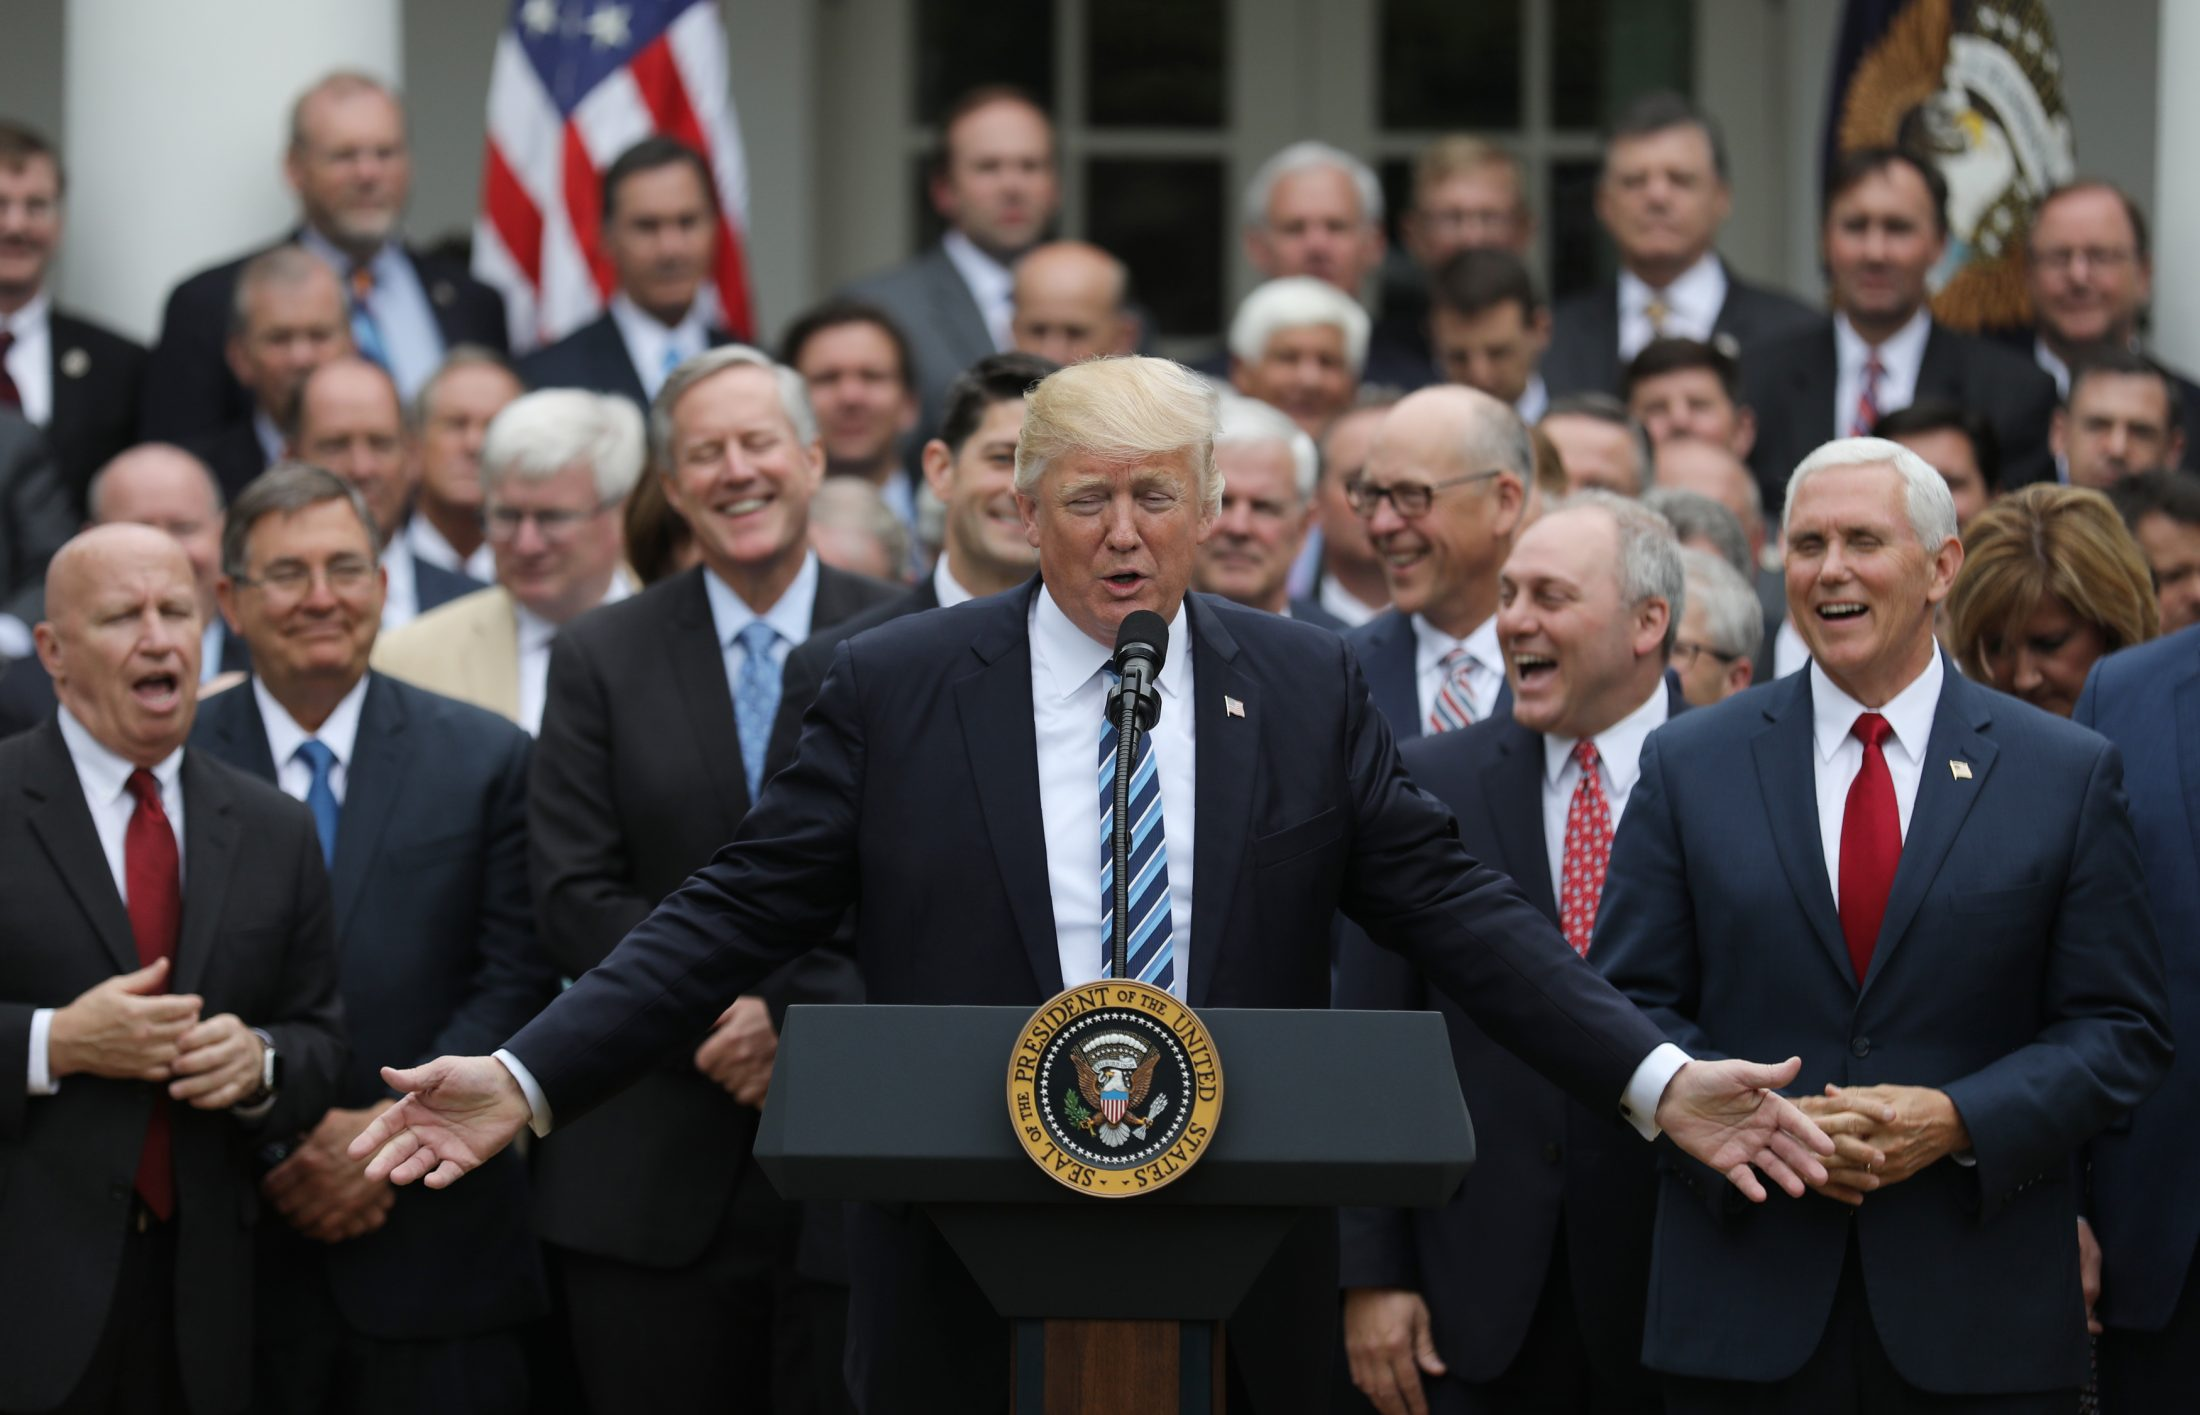 President Donald Trump (C) gathers with Vice President Mike Pence (R) and Congressional Republicans in the Rose Garden of the White House after the House of Representatives approved the American Healthcare Act, to repeal major parts of Obamacare and replace it with the Republican healthcare plan, in Washington, D.C. Photo by Carlos Barria/Reuters